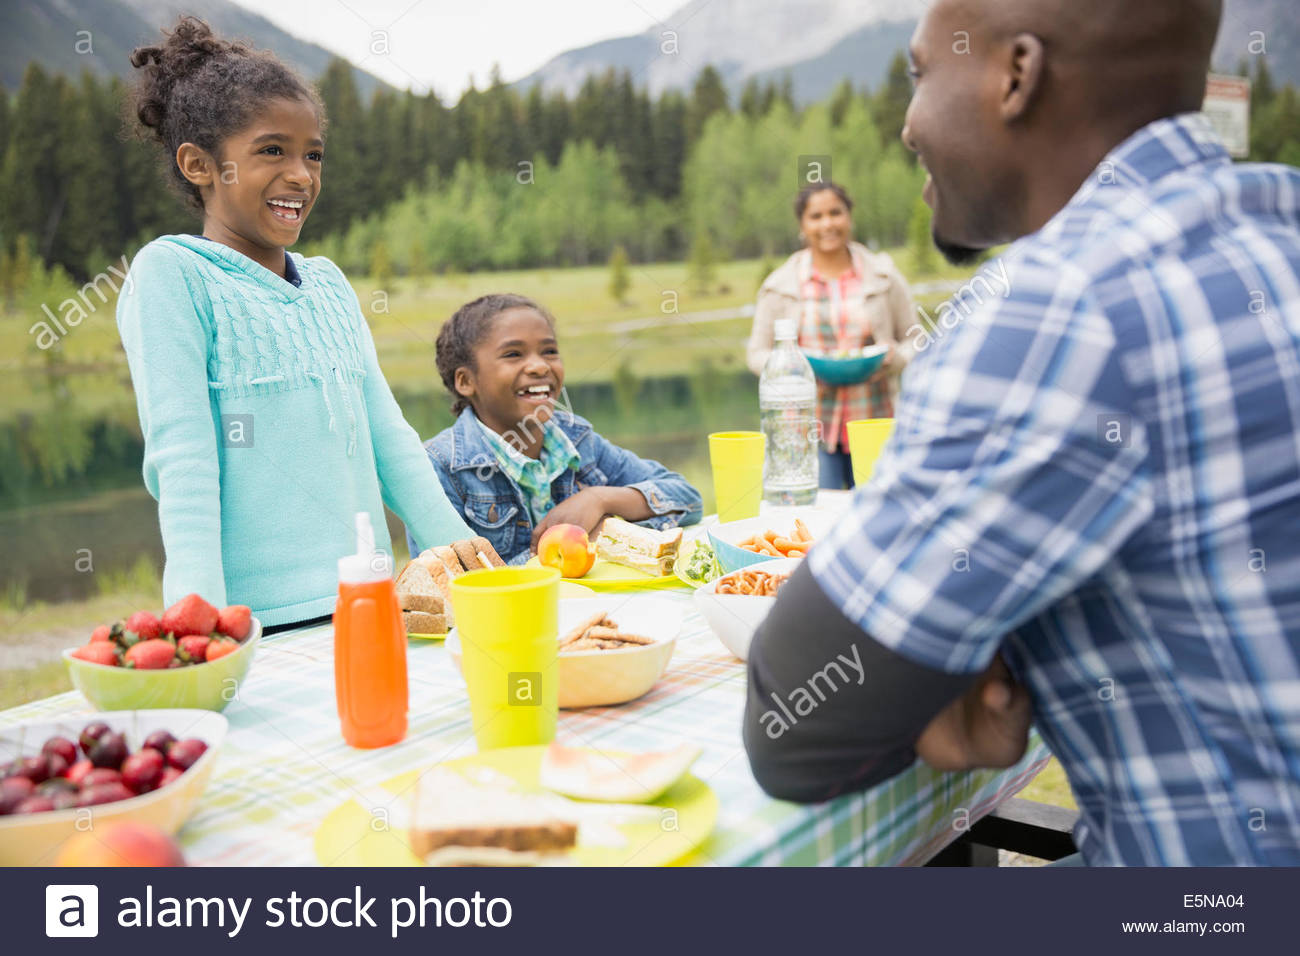 Family eating at picnic table - Stock Image